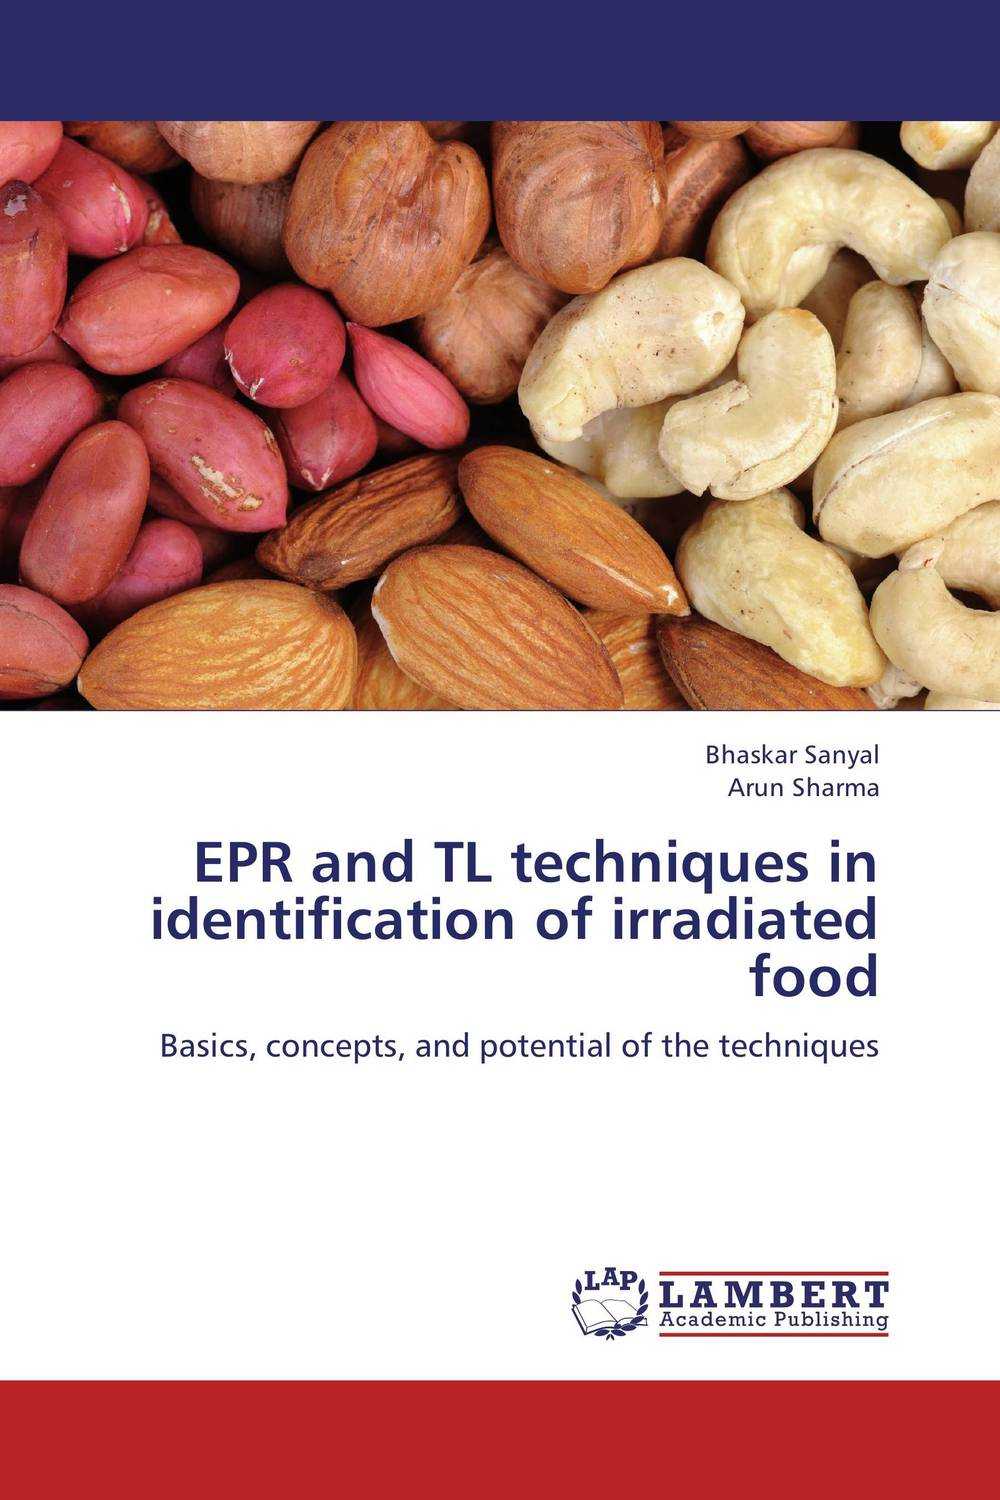 EPR and TL techniques in identification of irradiated food belousov a security features of banknotes and other documents methods of authentication manual денежные билеты бланки ценных бумаг и документов